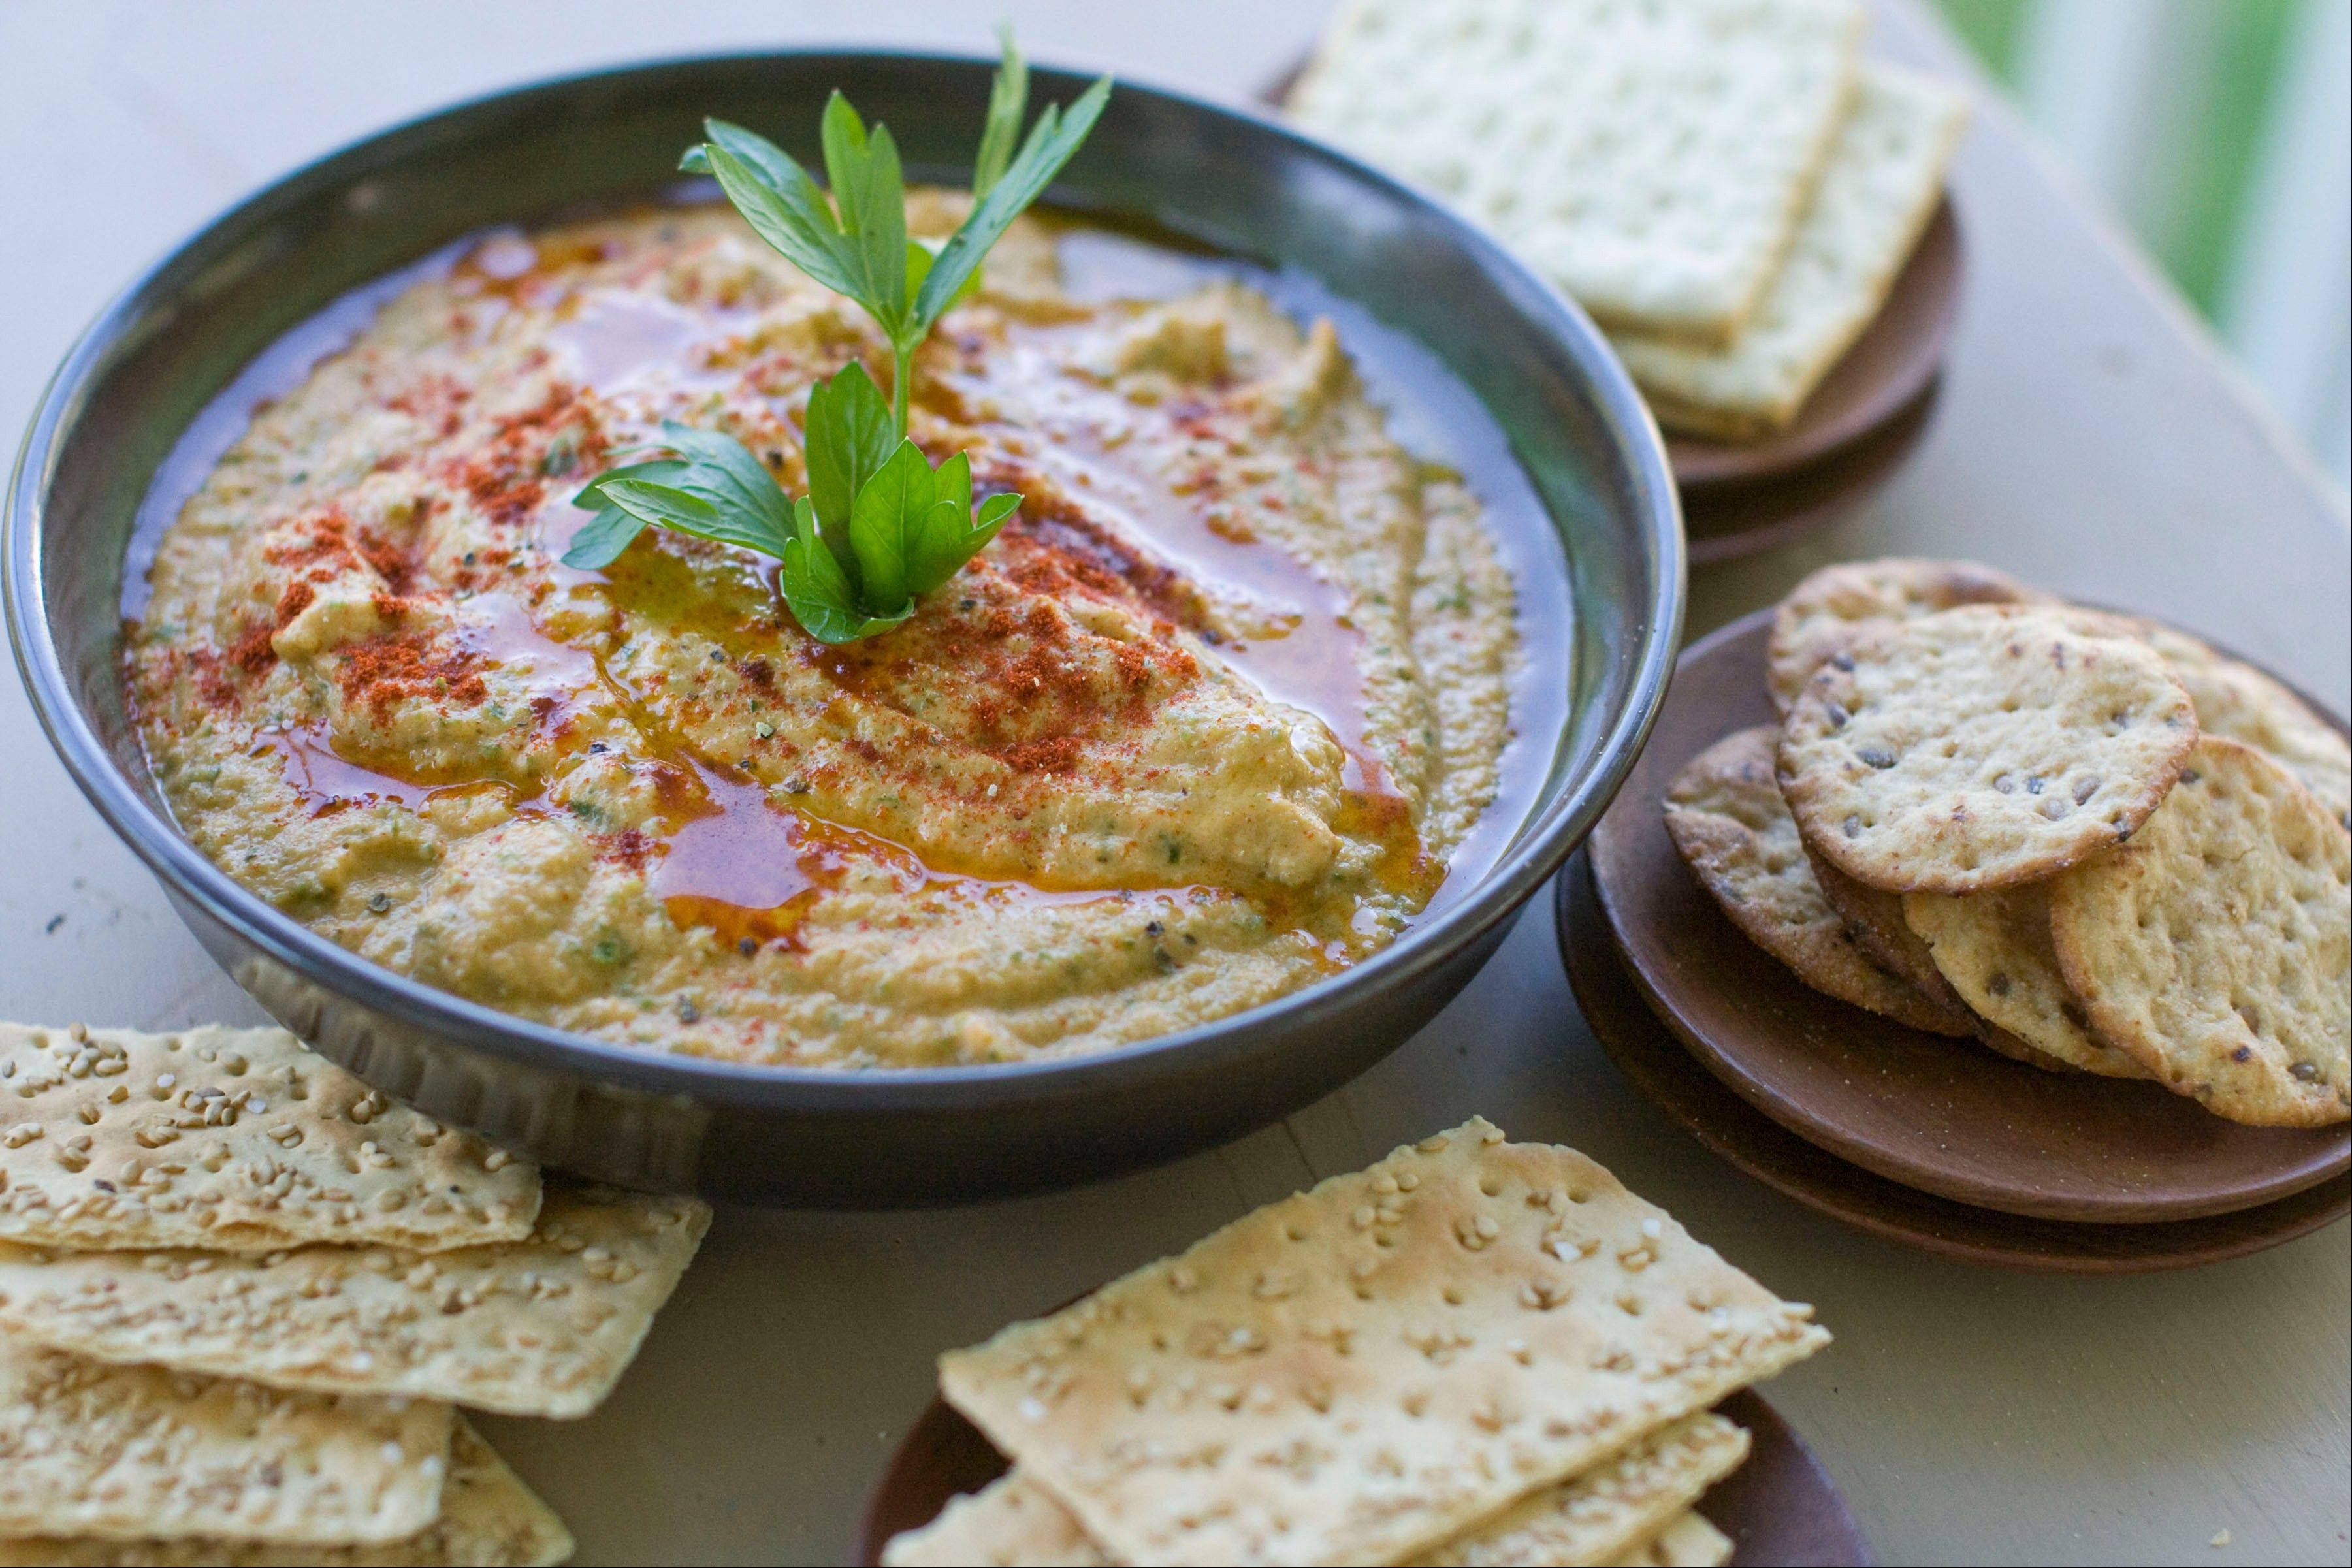 Grilled Zucchini Hummus is a delicious new way to use up the season's bounty.